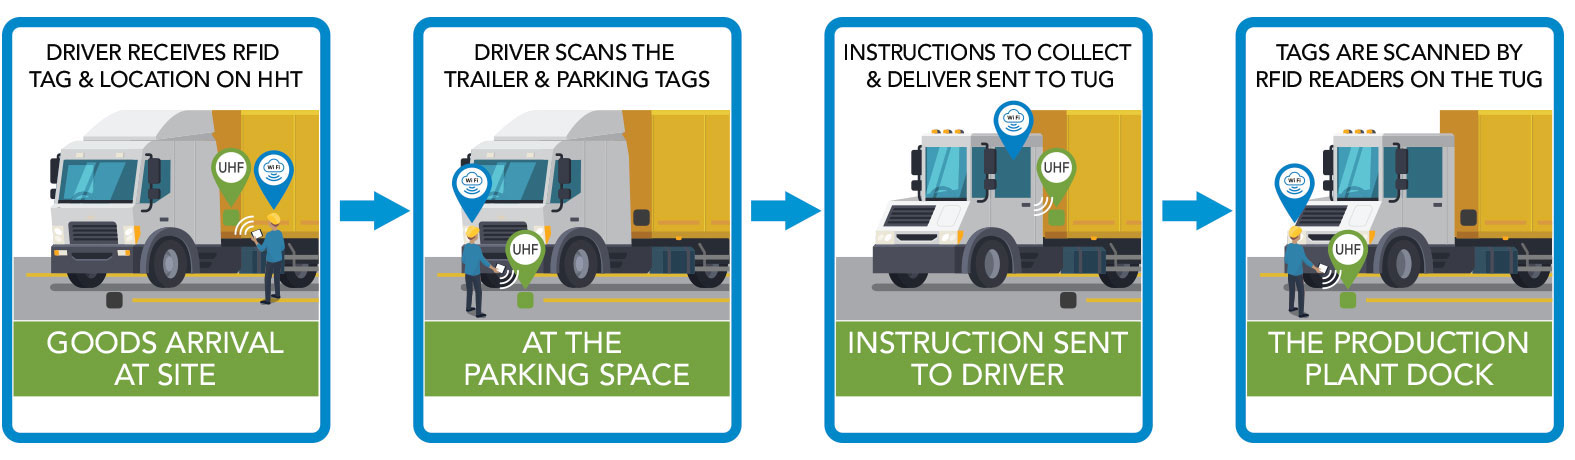 Goods arrival at site > At the parking space > Instruction sent to driver > The production plant dock